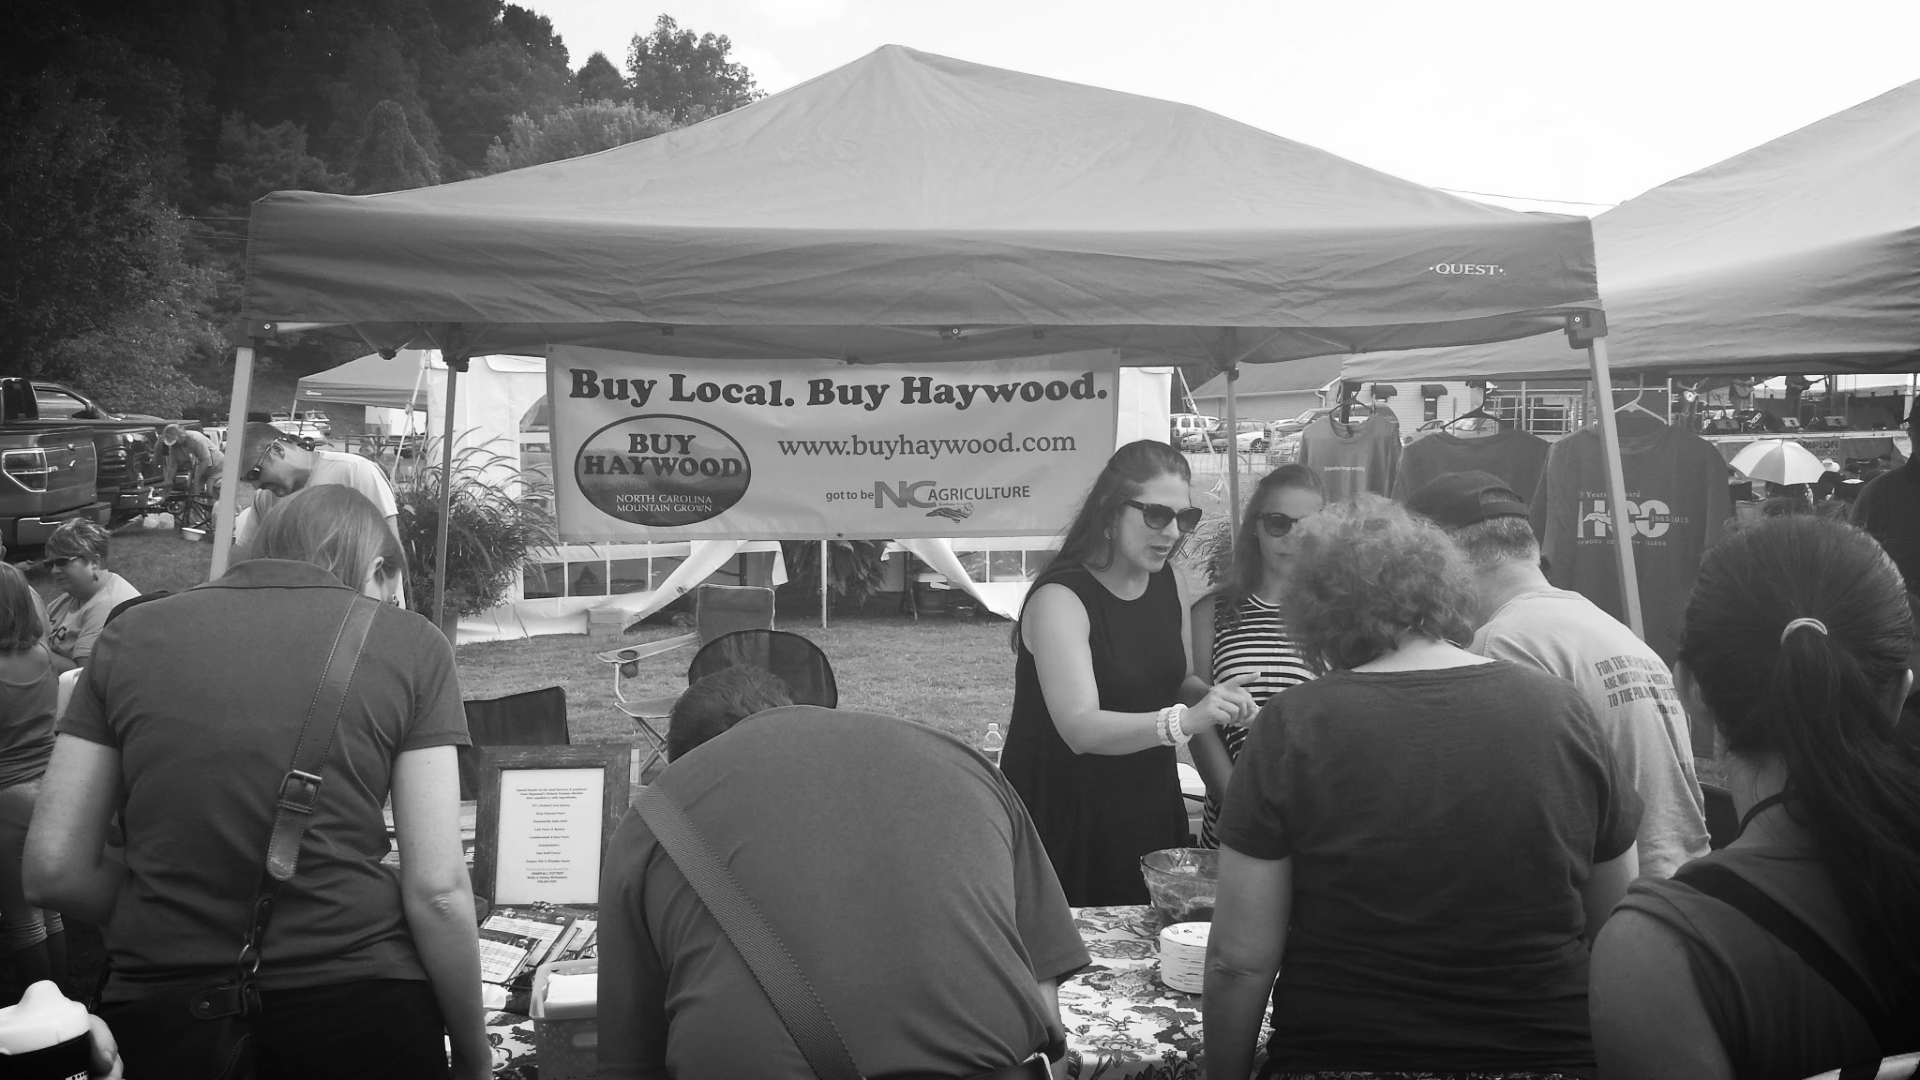 Buy Haywood Farmer's Market